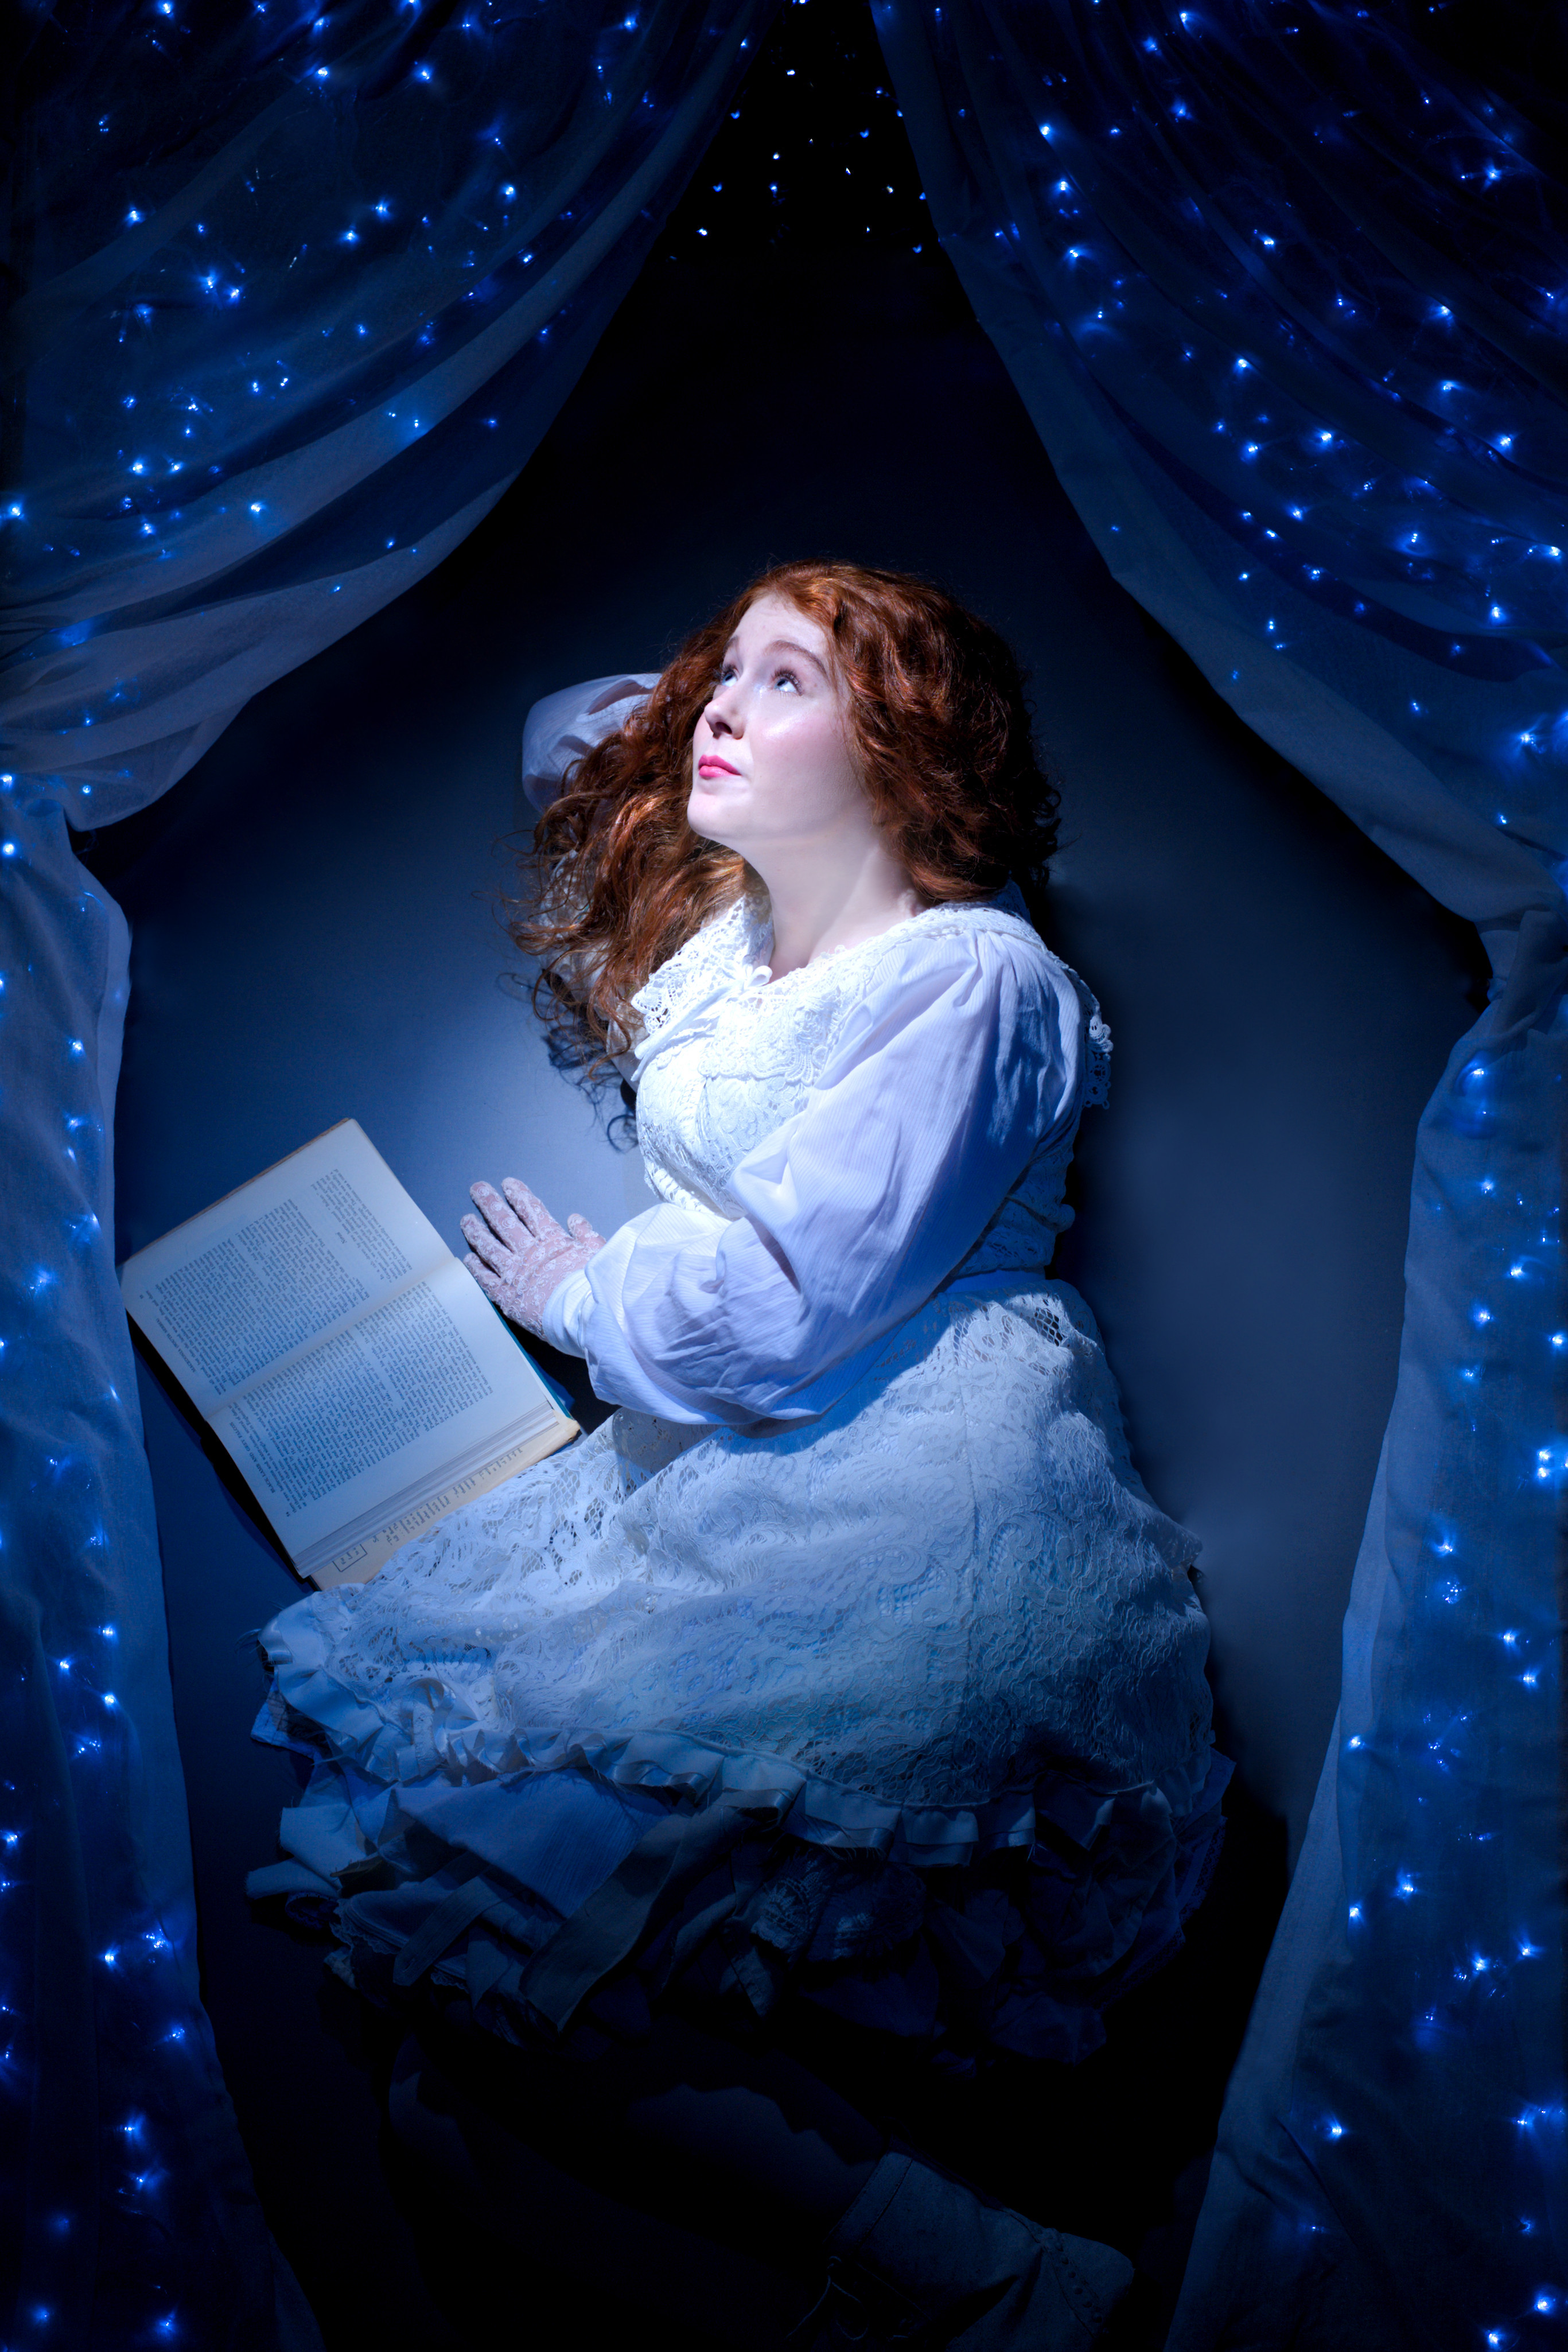 Redheaded girl with book stargazes as Poppet from the Night Circus